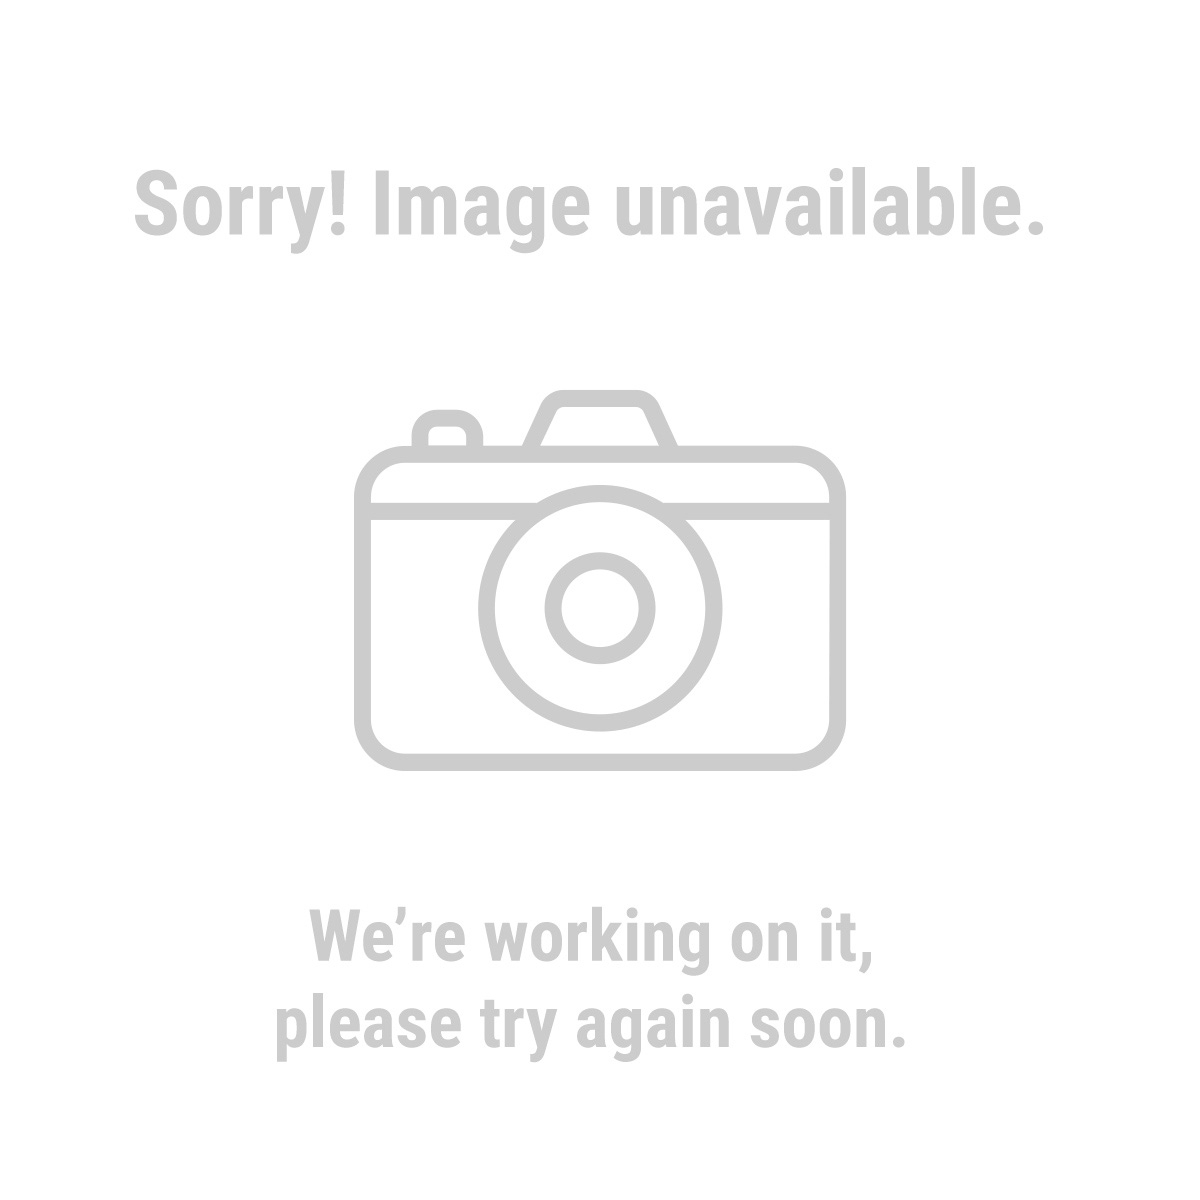 HFT 7431 11 ft. 4'' x 11 ft. 6'' All Purpose Weather Resistant Tarp